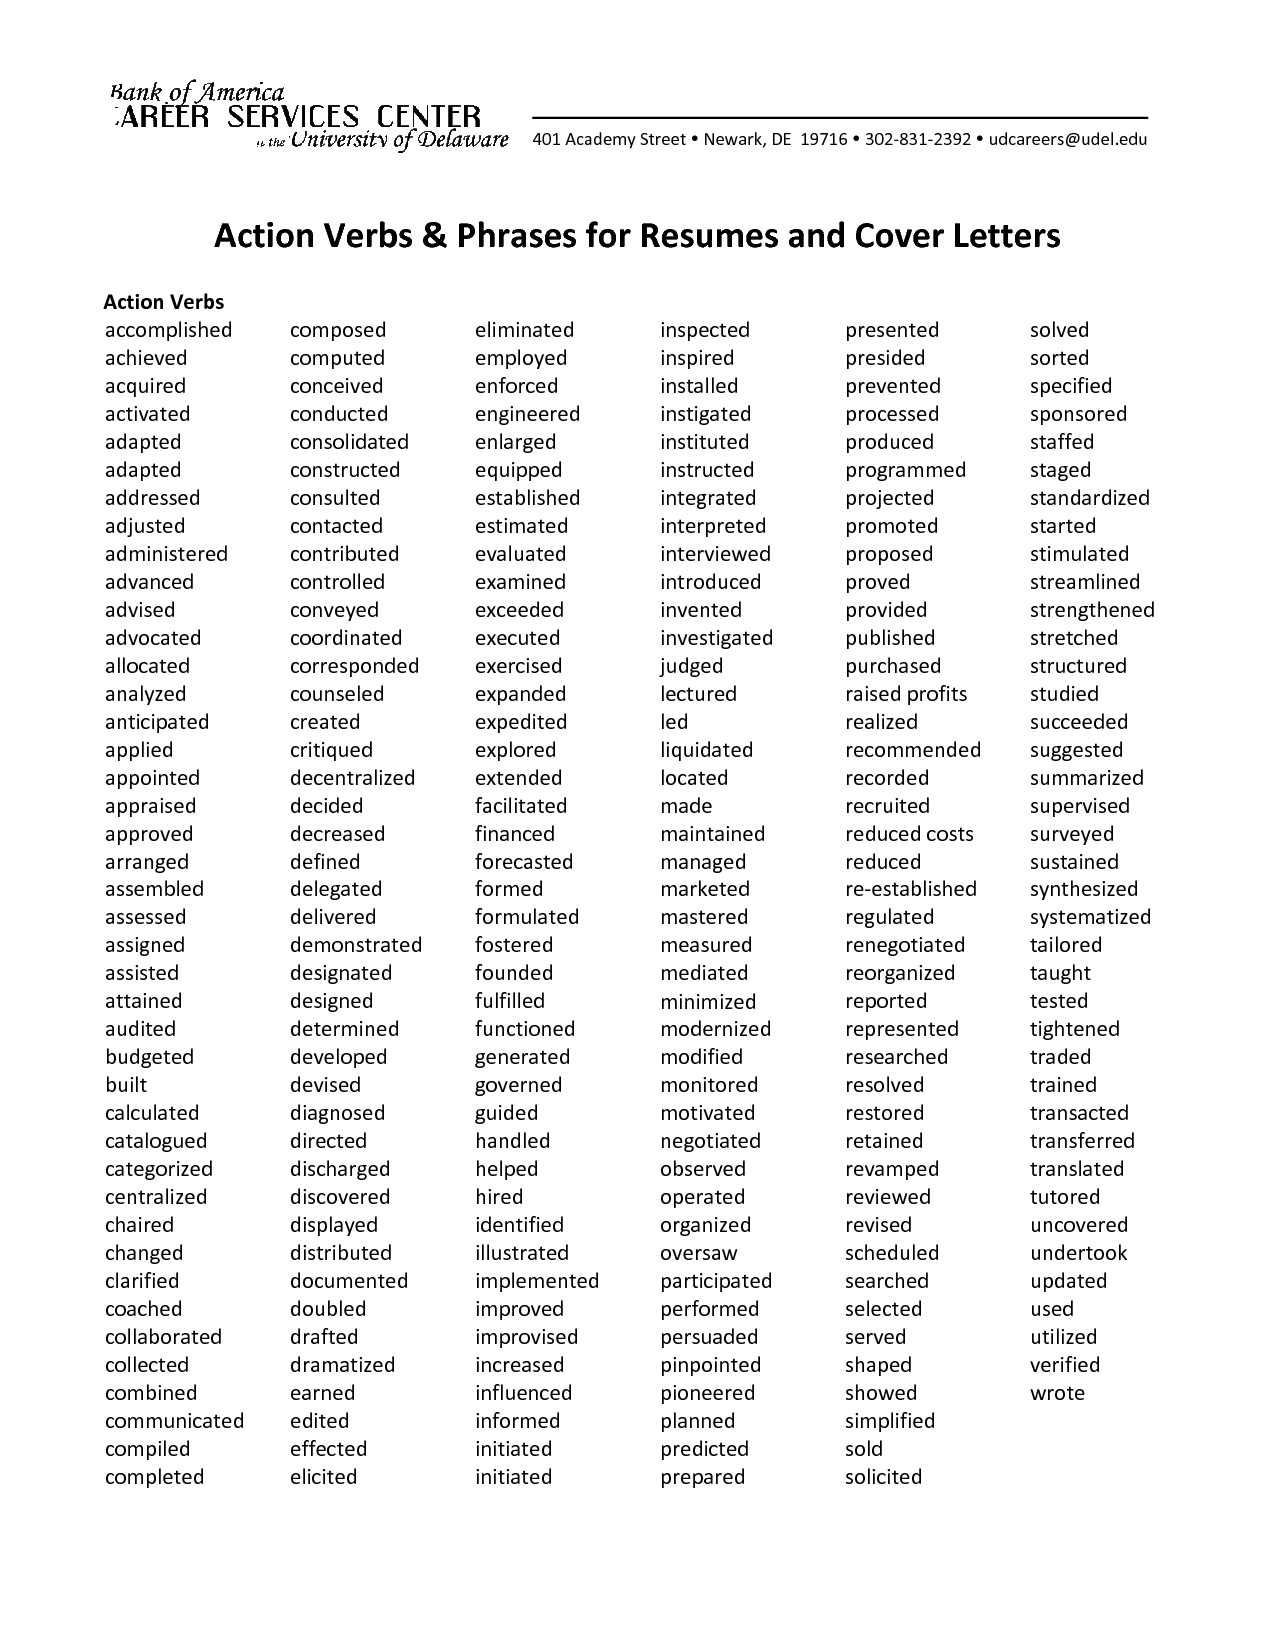 Action Verbs Phrases For Resumes And Cover Letters  Resume Verbs For Teachers